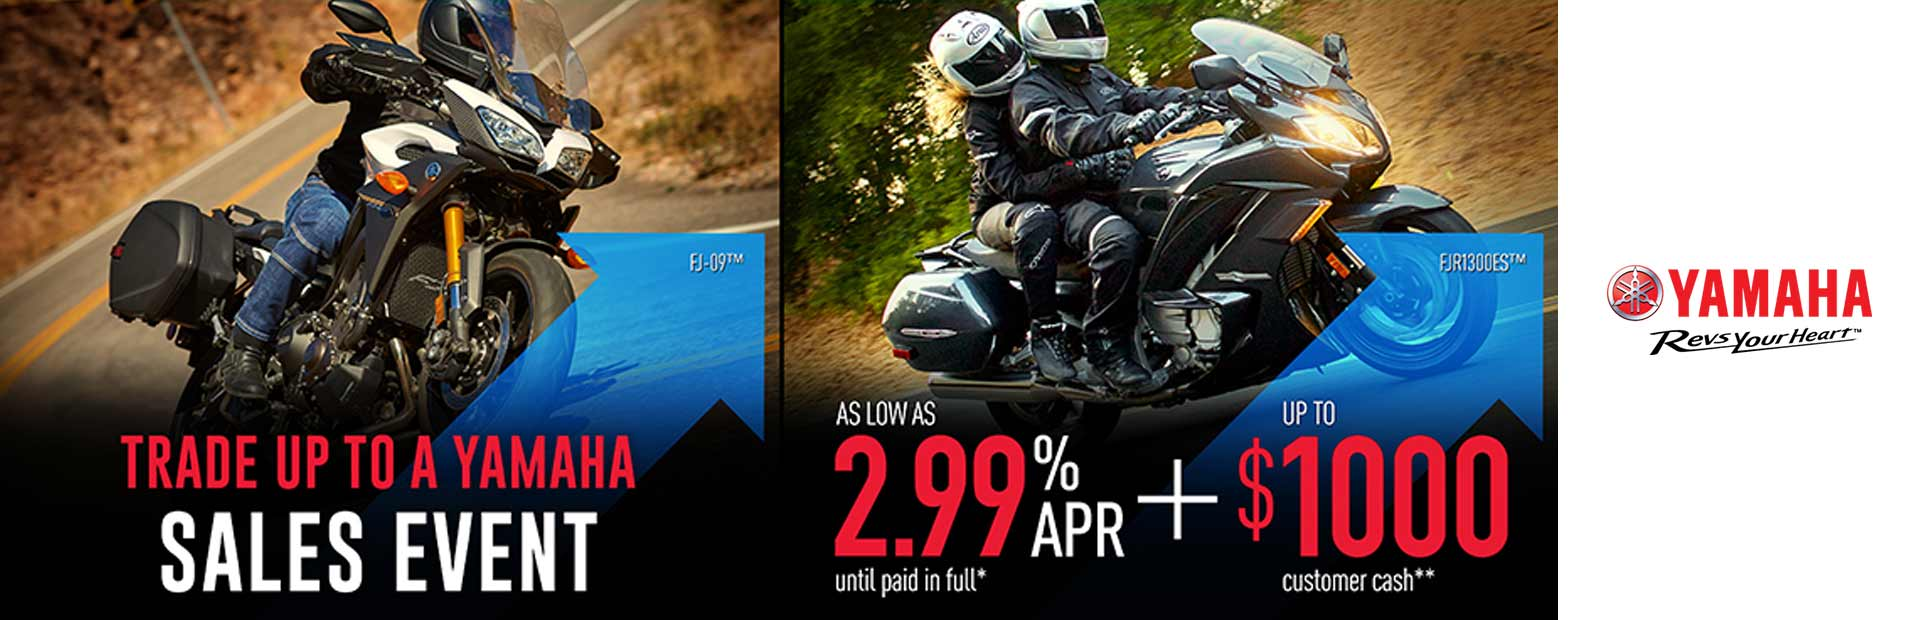 Yamaha: As Low As 2.99% APR + Up To $1000 Customer Cash**